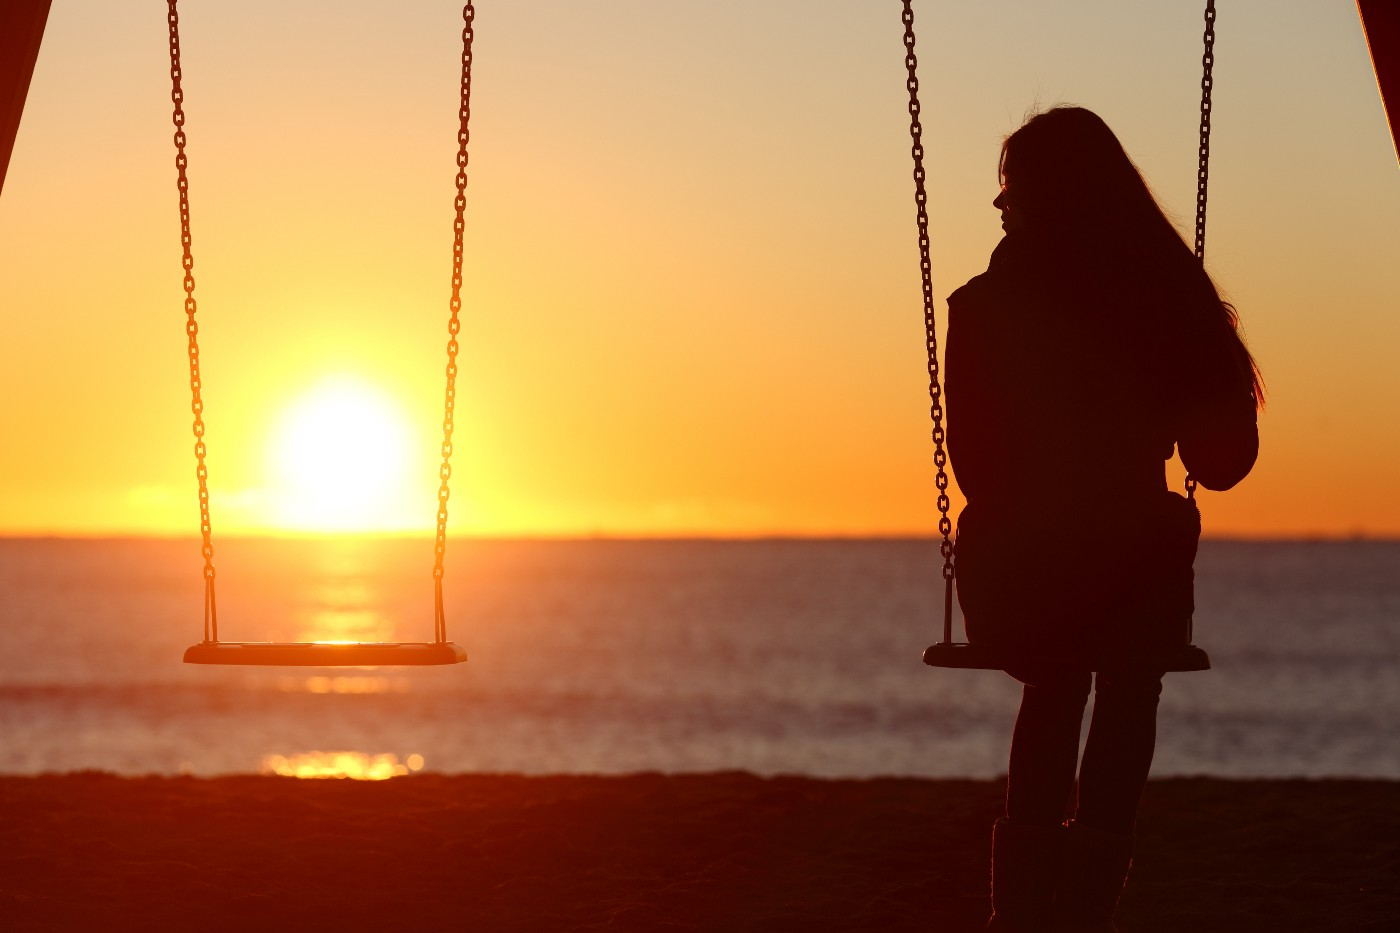 Woman staring at the sunset on a beach on a pair of swings with one swing empty